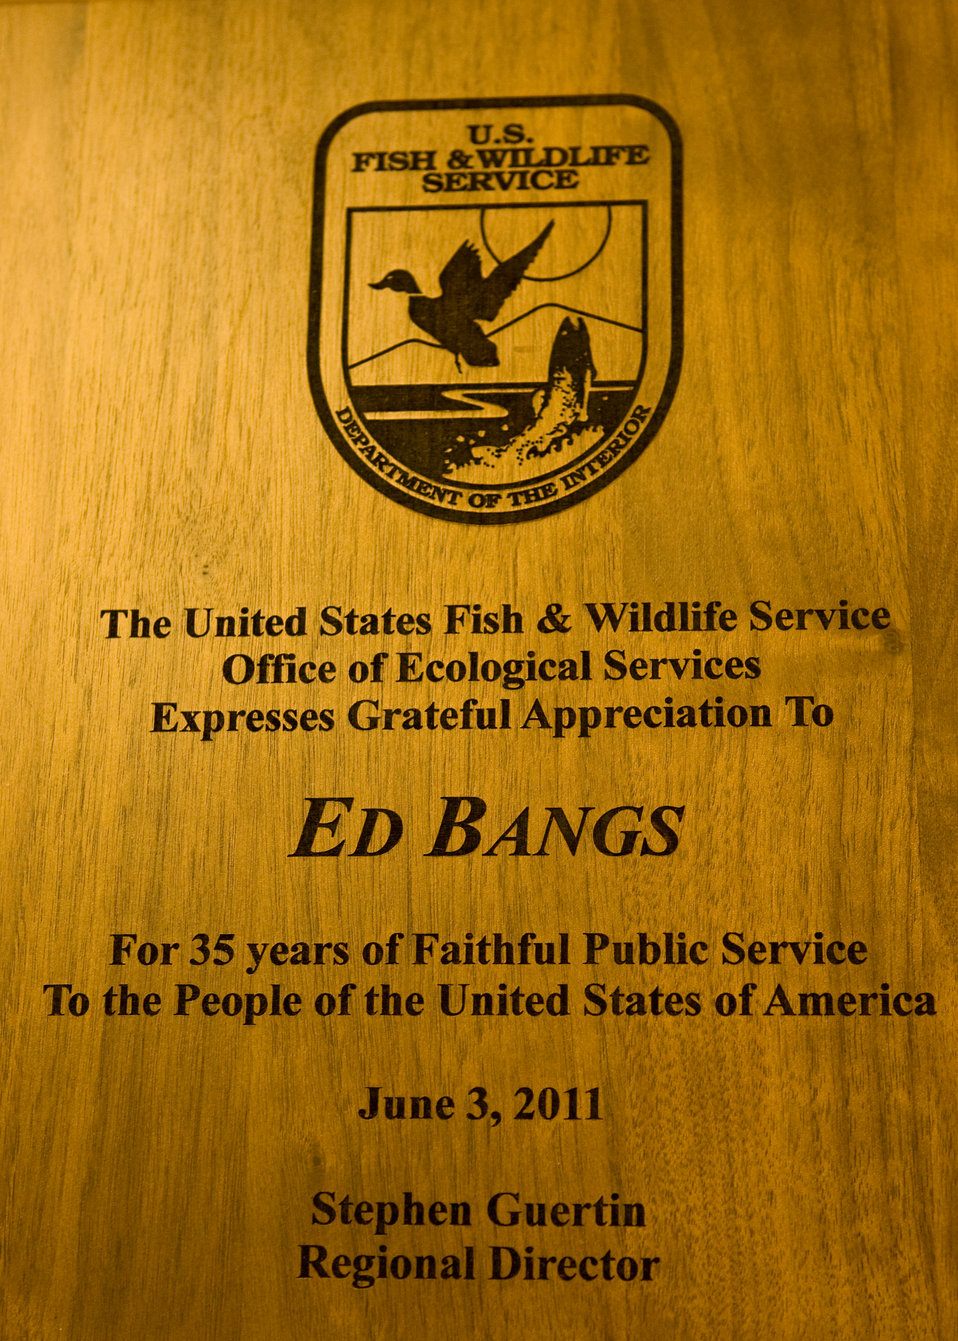 U.S. Fish and Wildlife Plaque